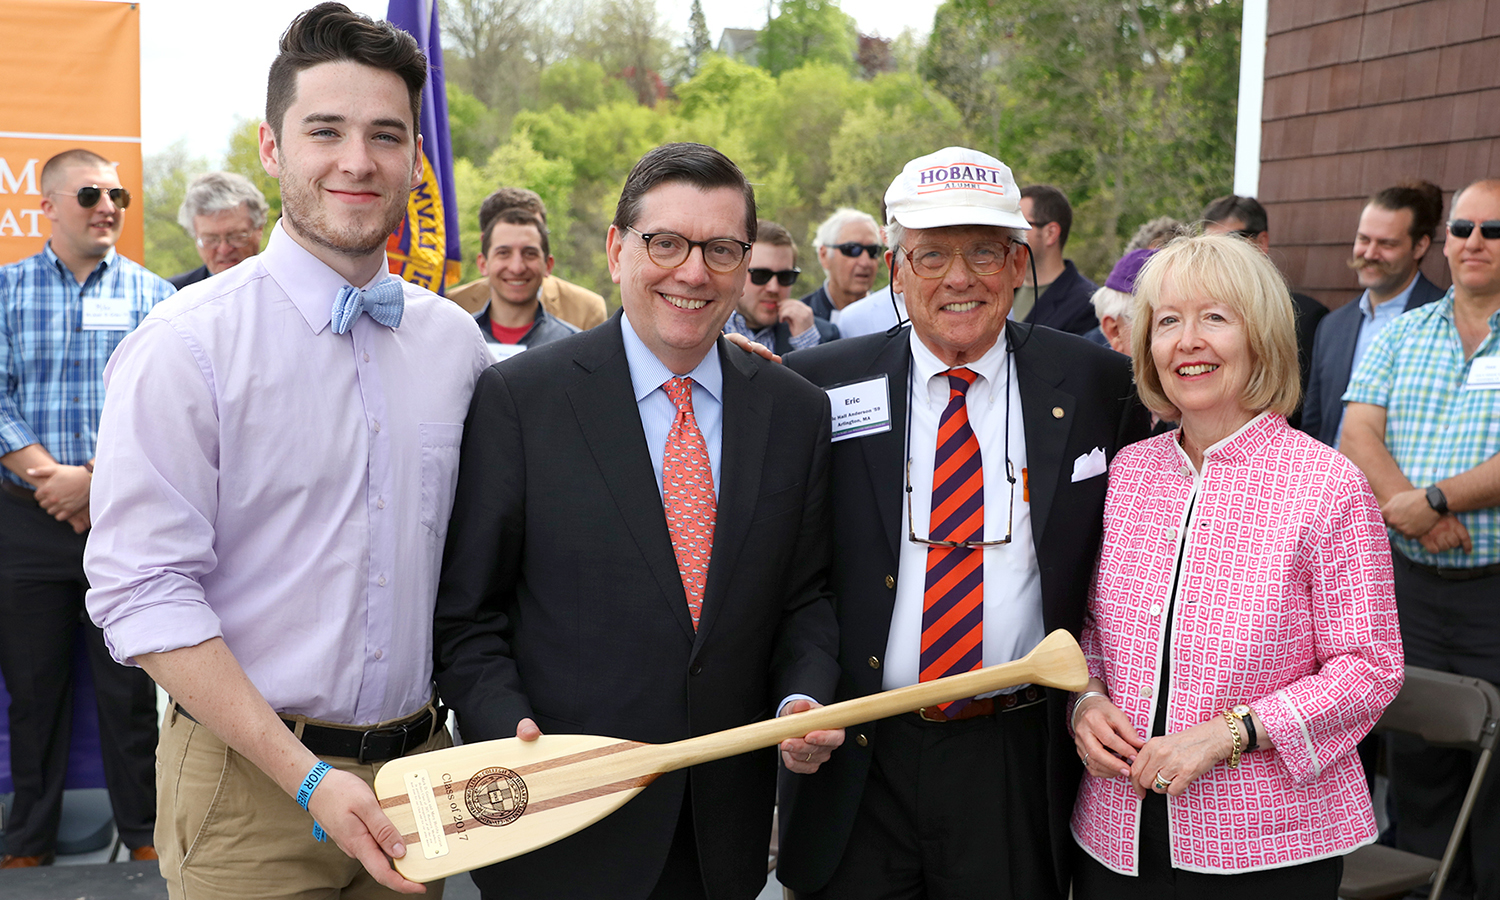 James Mandart '17 (left) and Eric Hall Anderson '59 (right center) welcome Mark D. Gearan and Mary Herlihy Gearan into the Hobart College Class of 2017 with the presentation of a class paddle.